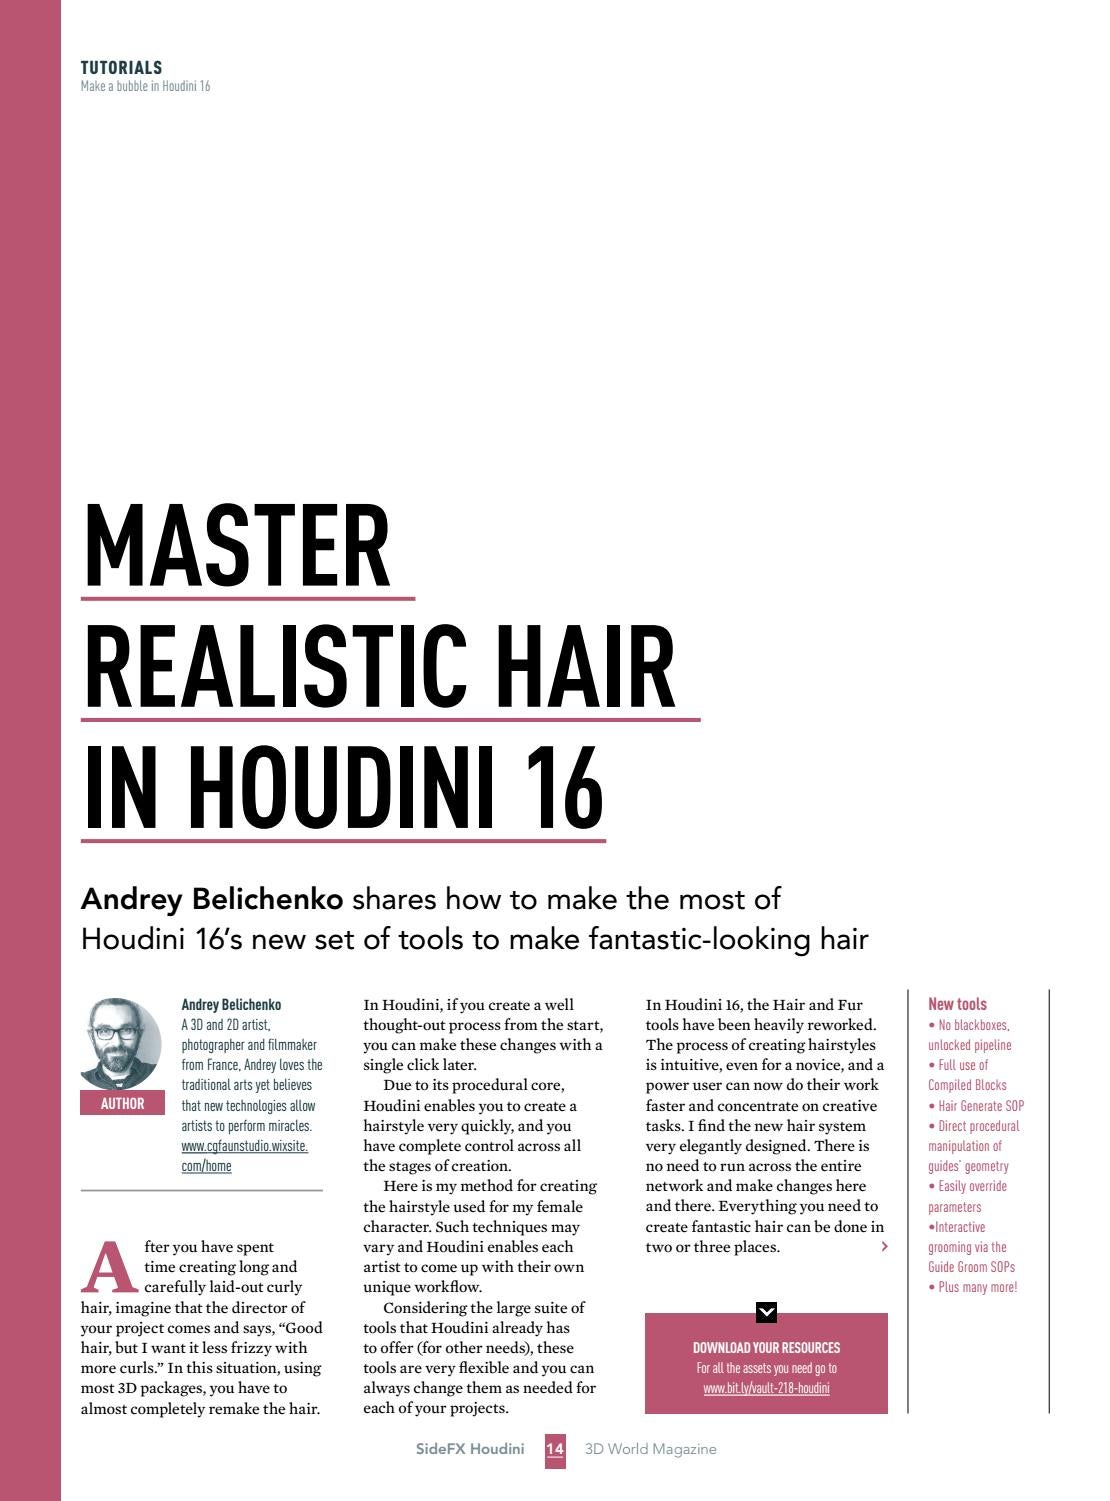 Power Up Your Houdini Skills with SideFX by Future PLC - issuu